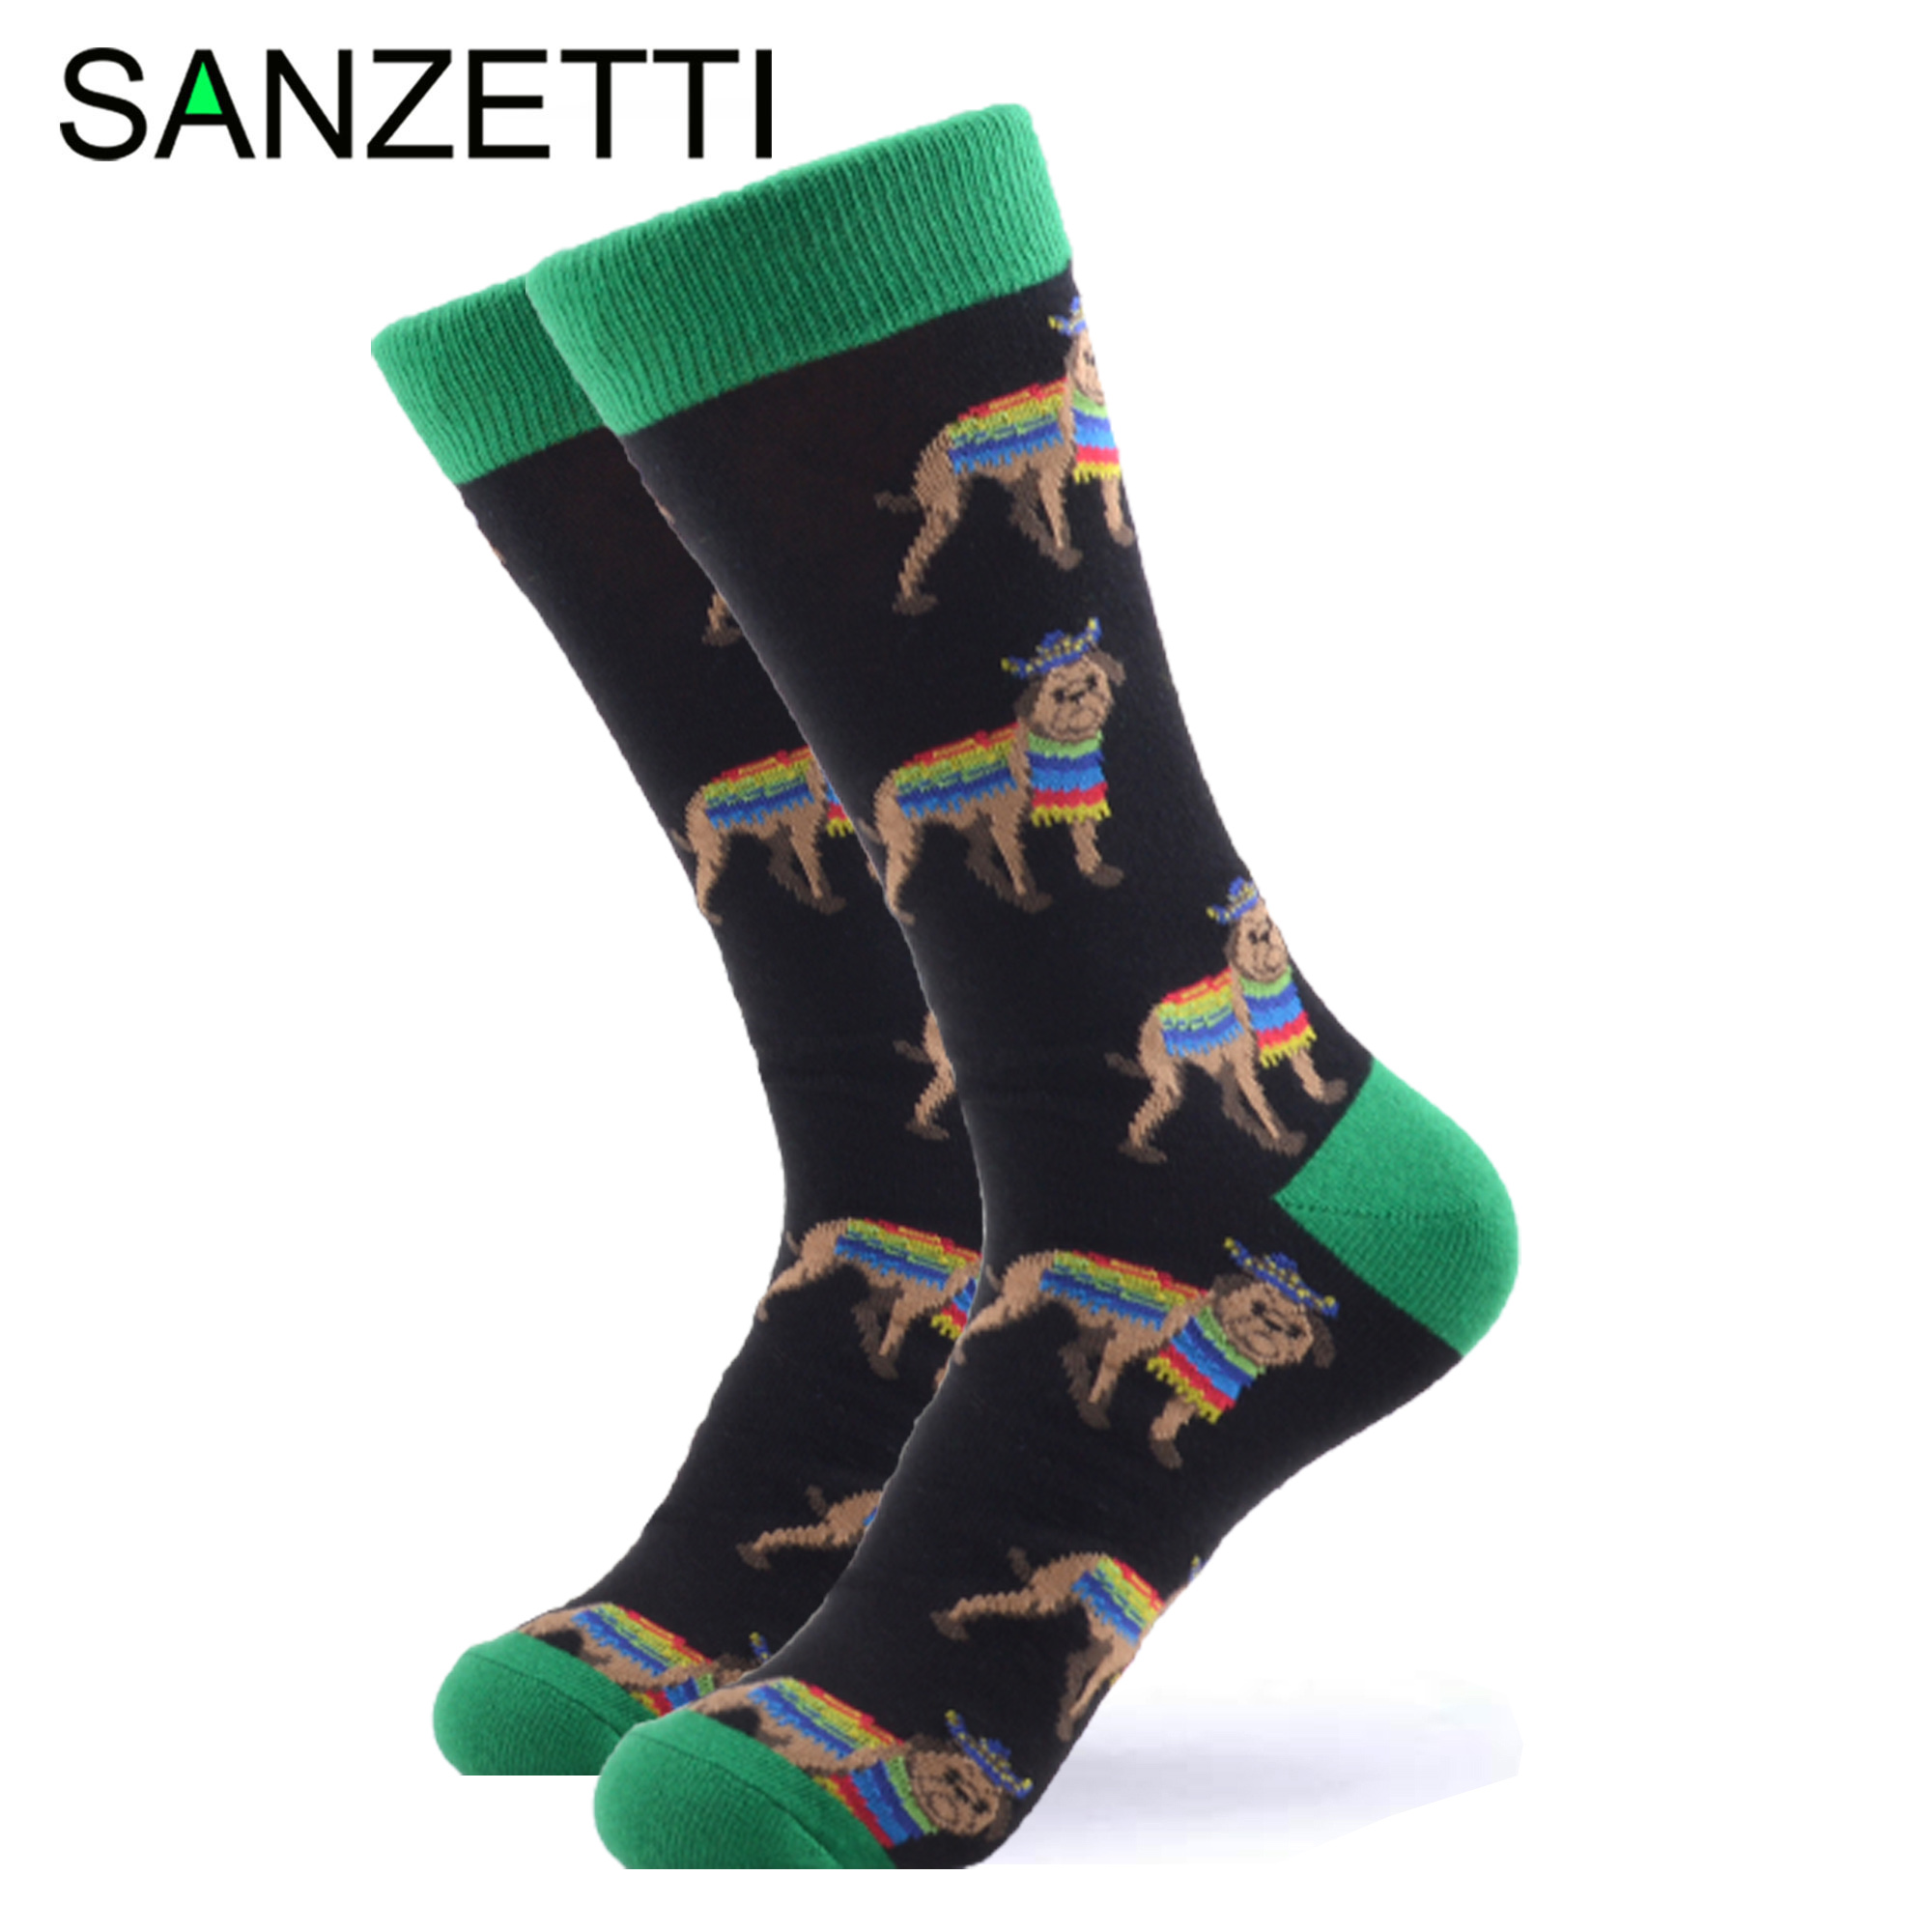 SANZETTI 1 Pair Happy Socks High Quality Men's Colorful Comfortable Combed Cotton Animal Funny Novelty Gift Wedding Dress Socks